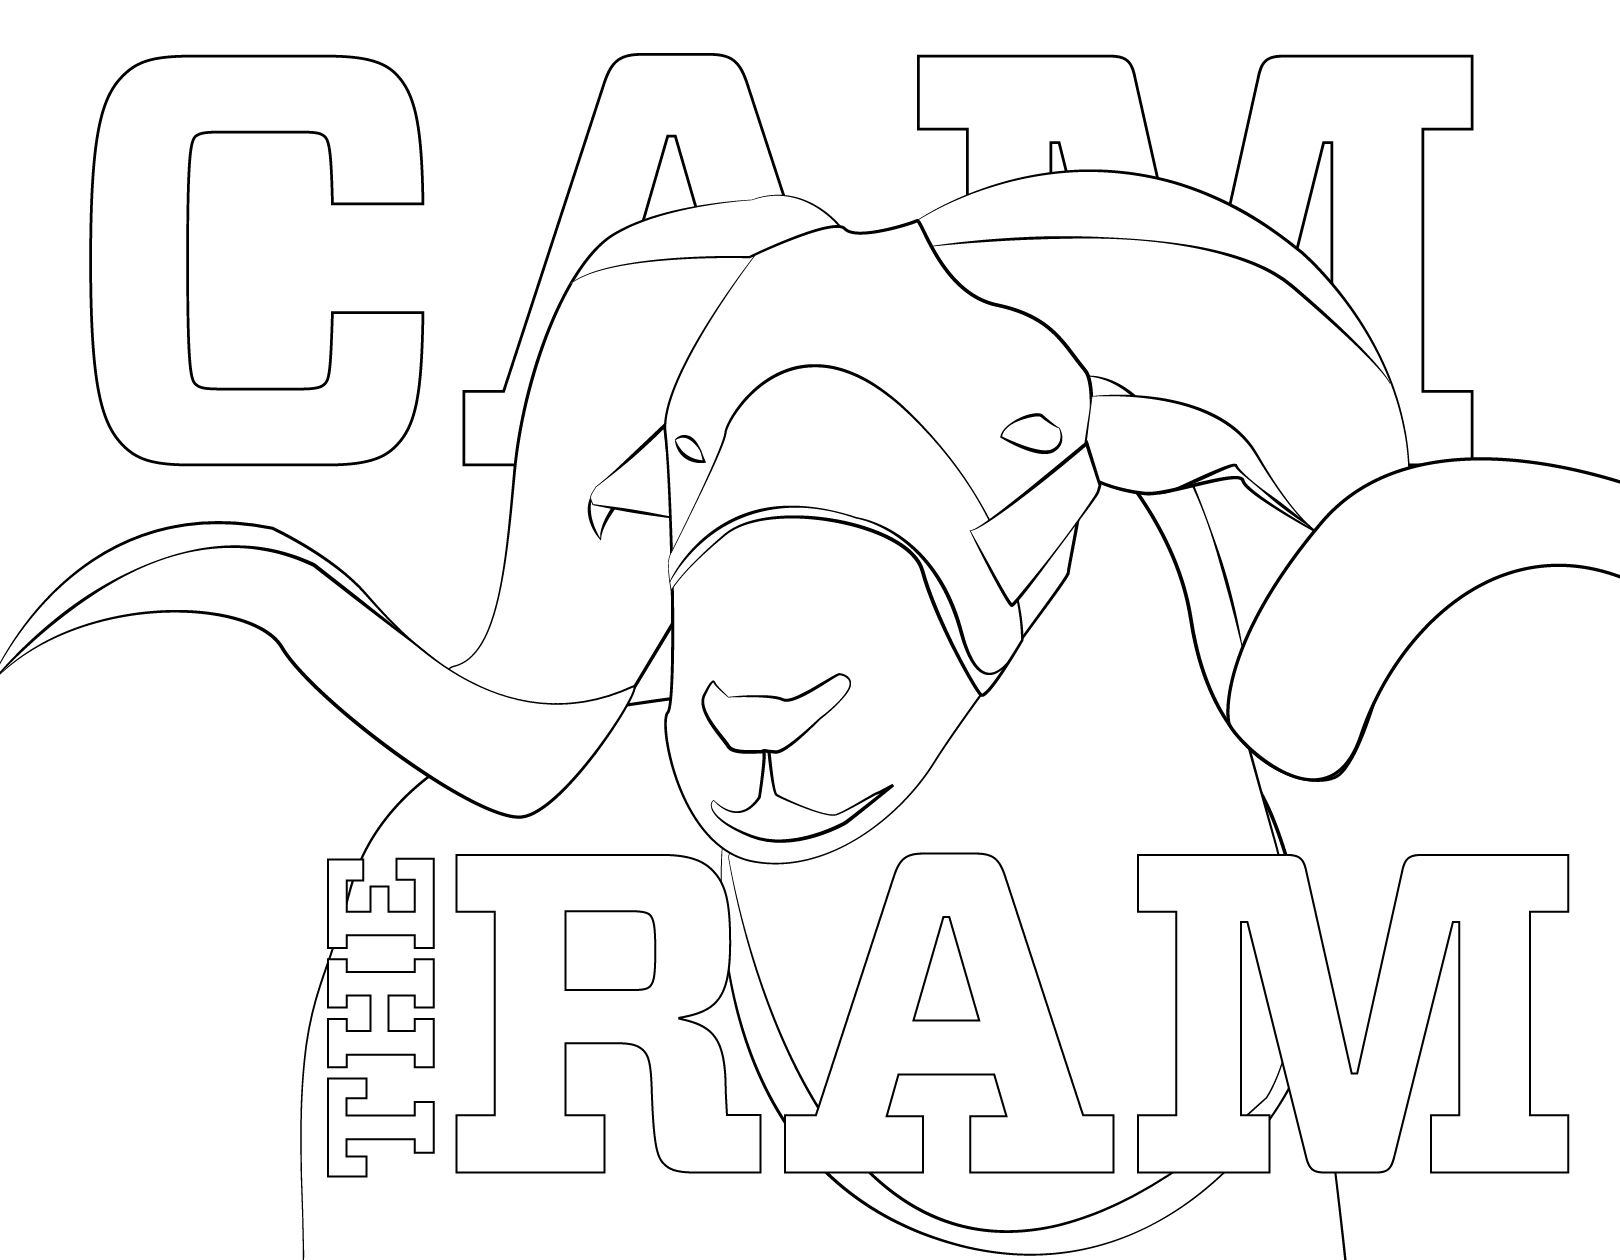 Print Out Cam The Ram And Color Him During A Study Break This Week